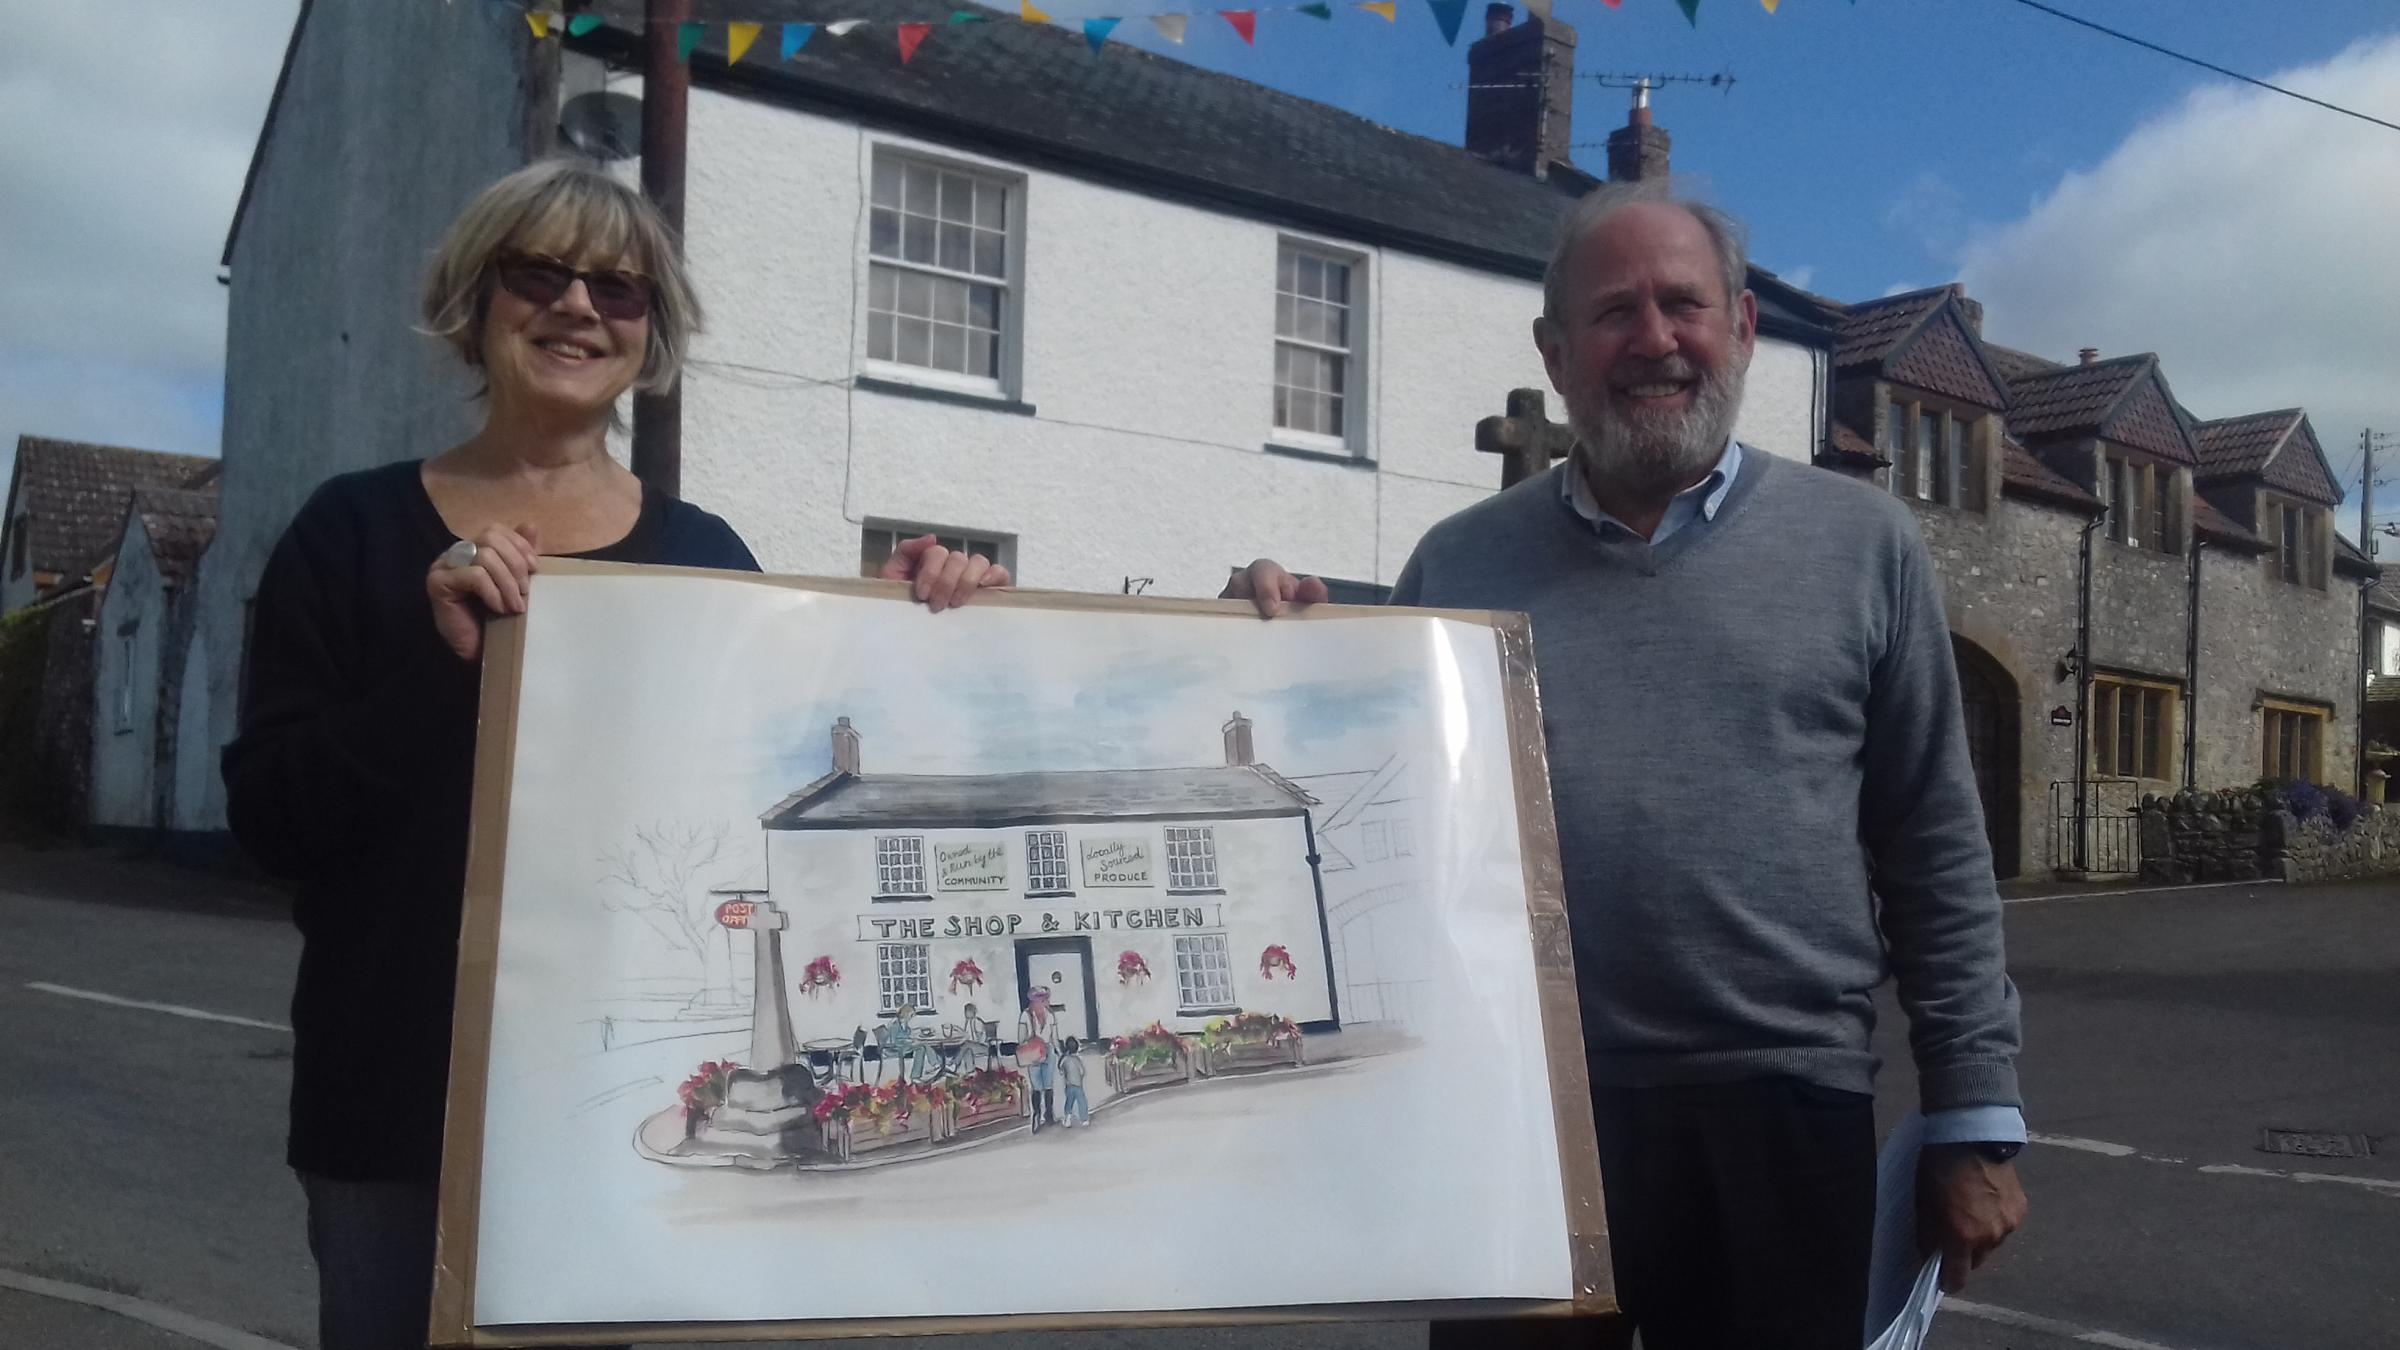 Final hurdle for village shop after epic £300,000 fundraising